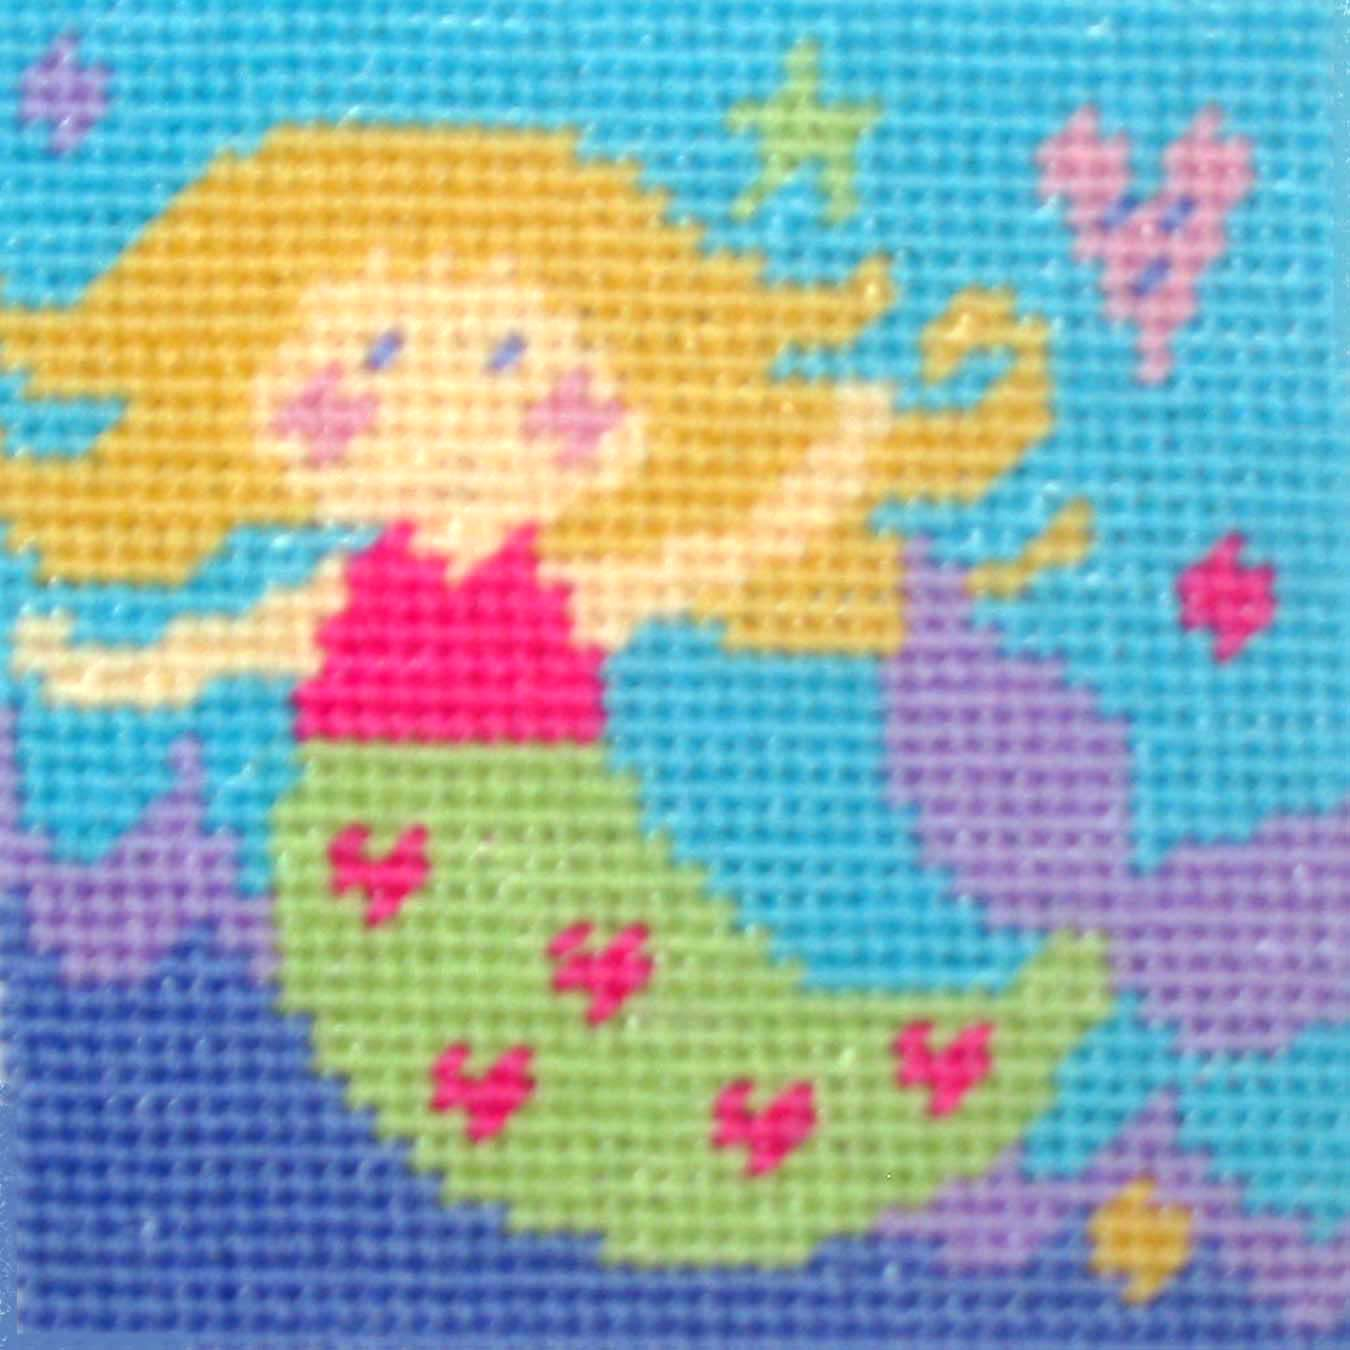 The Stitching Shed Mermaid Tapestry Kit